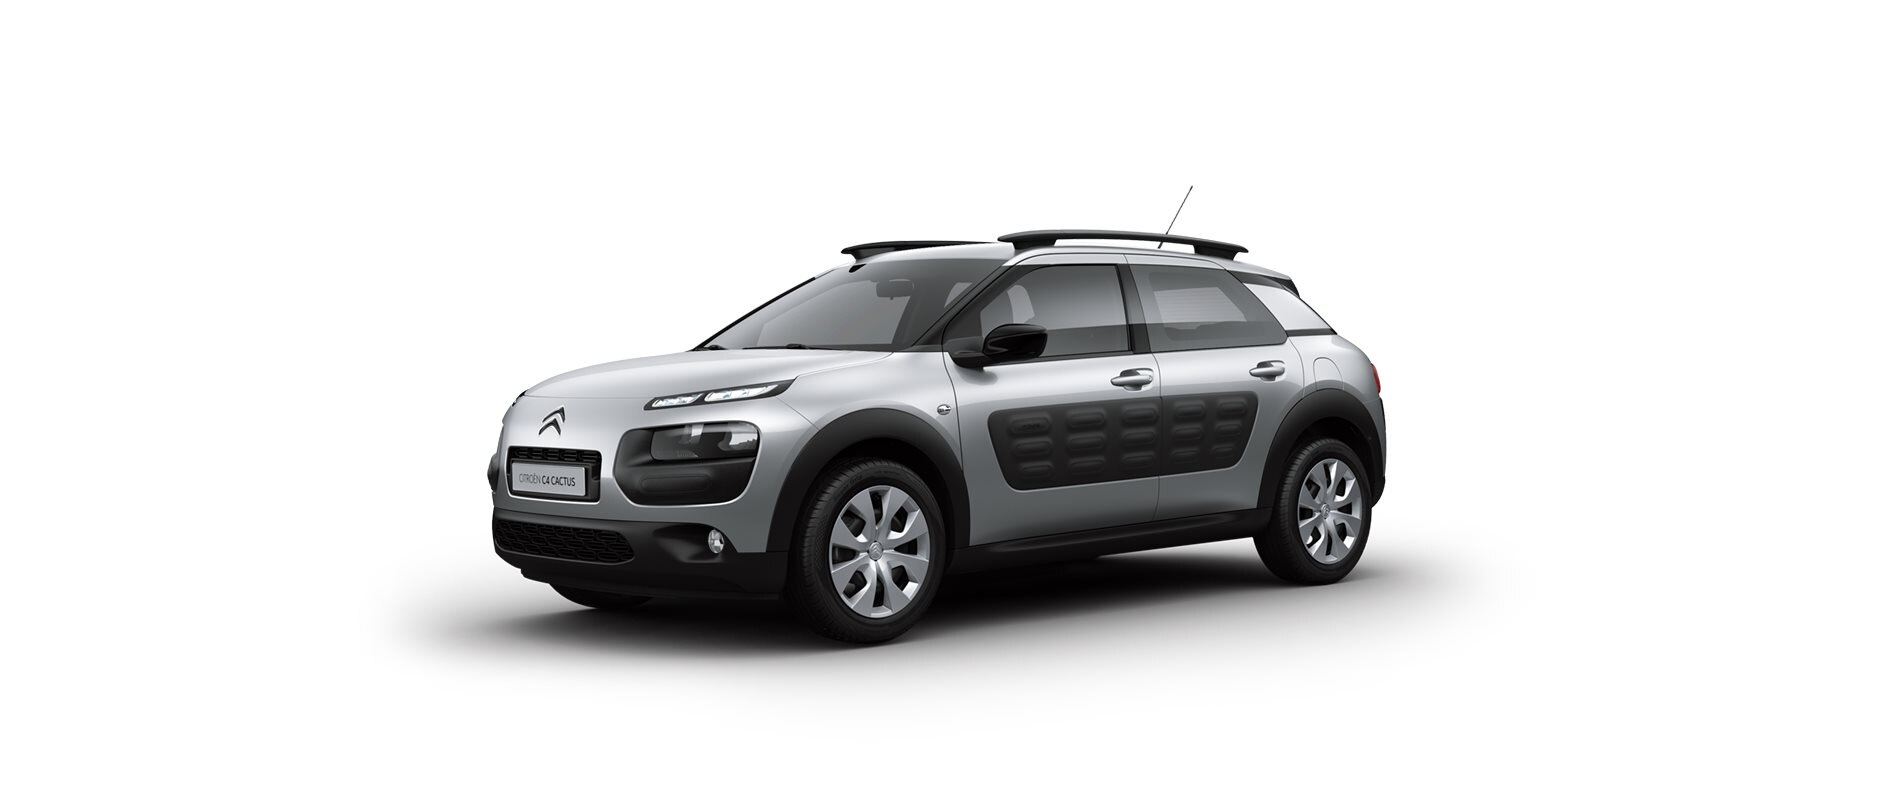 C4Cactus-Feel-front-view